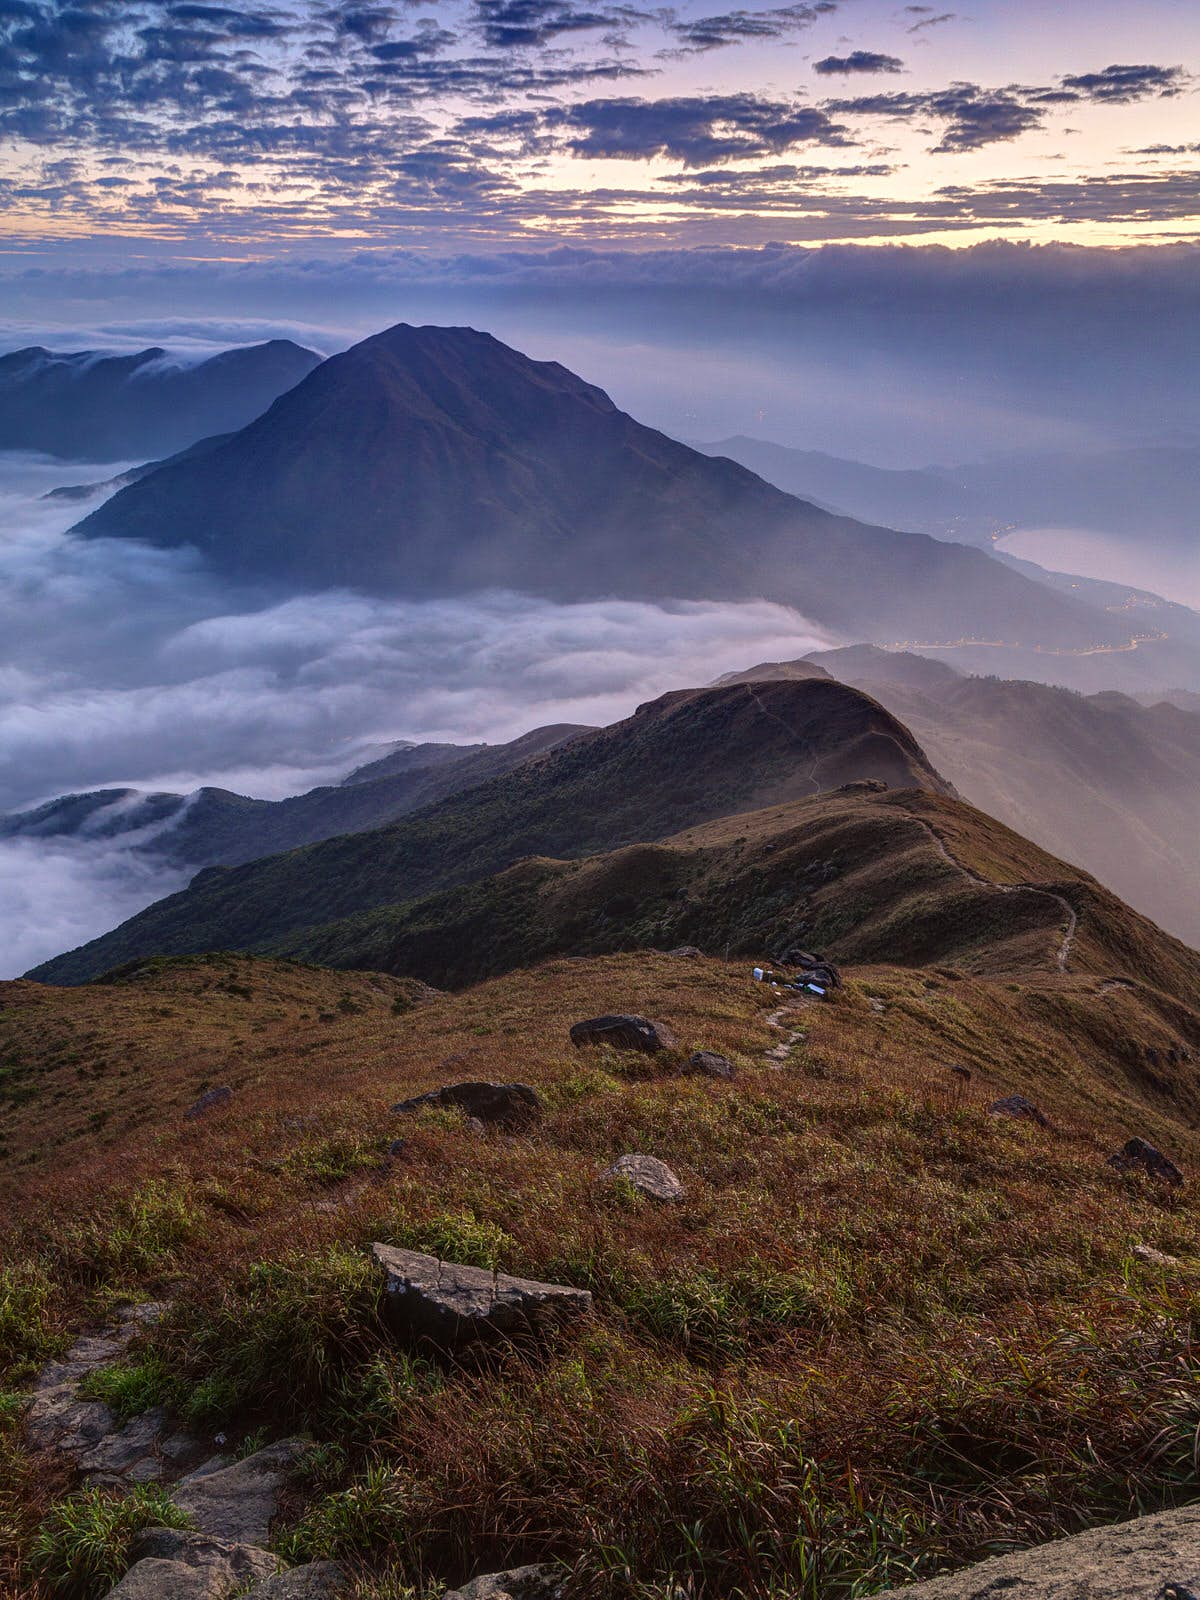 Clouds rolling over mountain on Lantau Island, viewed from the Lantau Peak (the second highest peak in Hong Kong, China) at dawn.